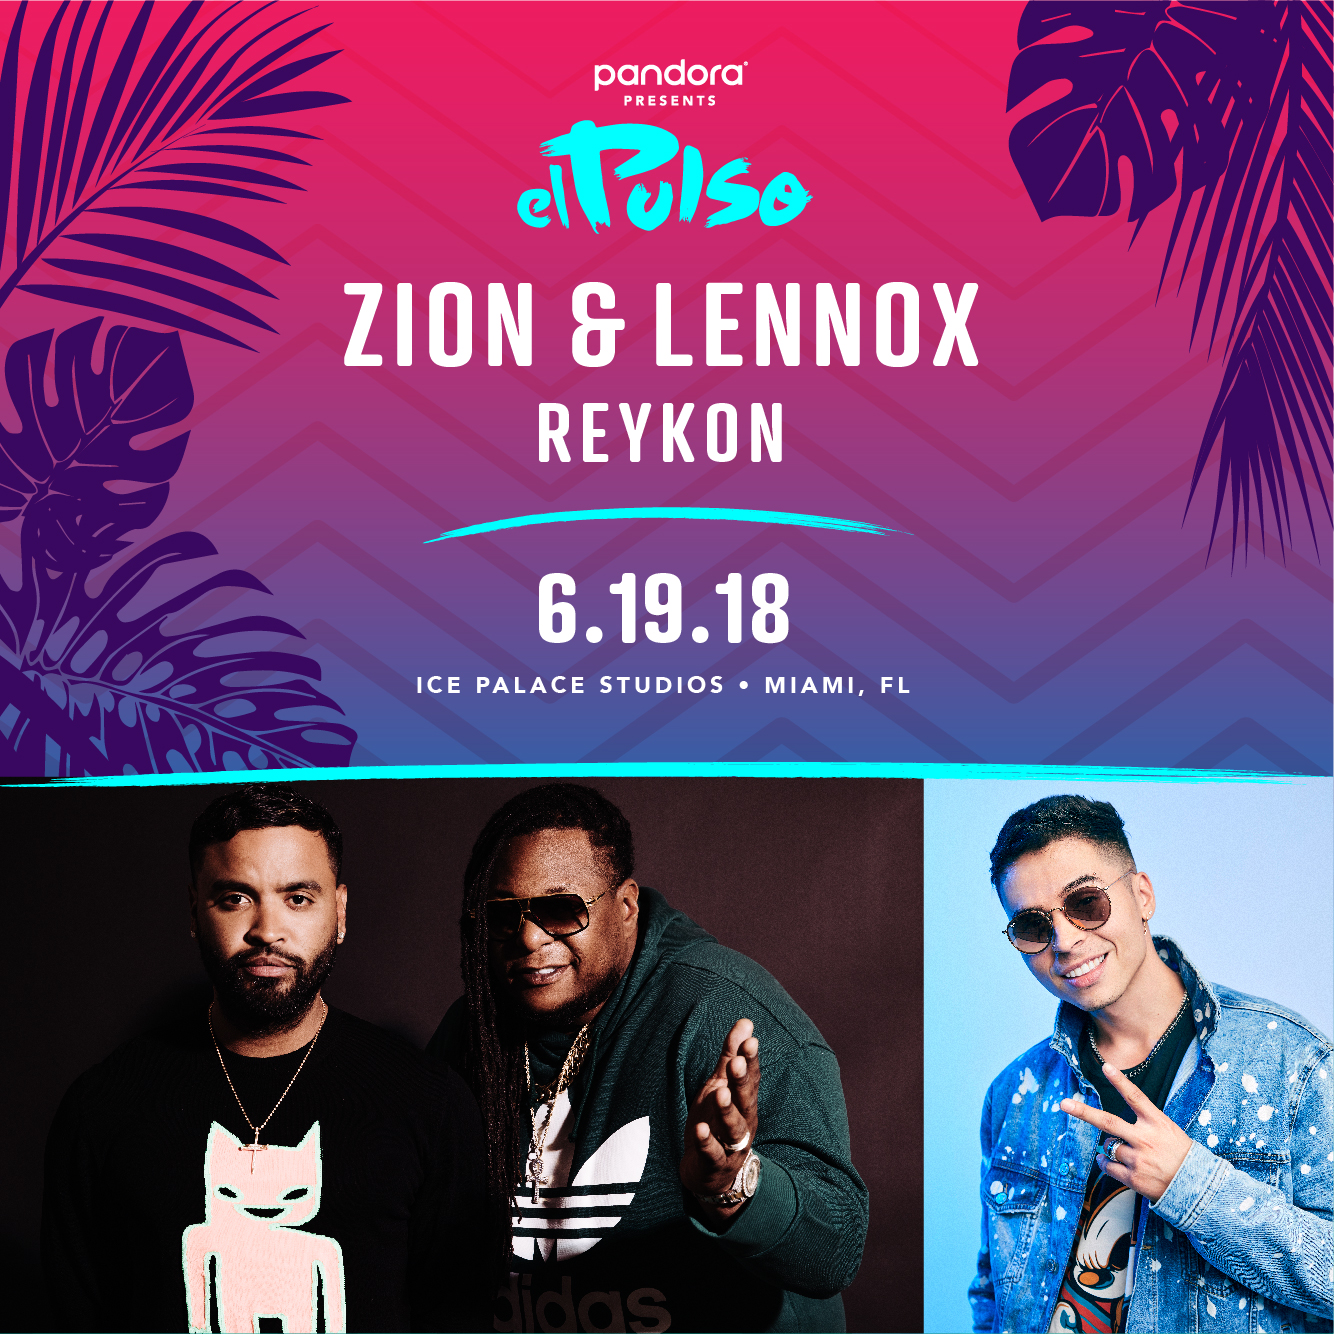 How to get into an Exclusive Miami Concert with Featuring Zion & Lennox with REYKON